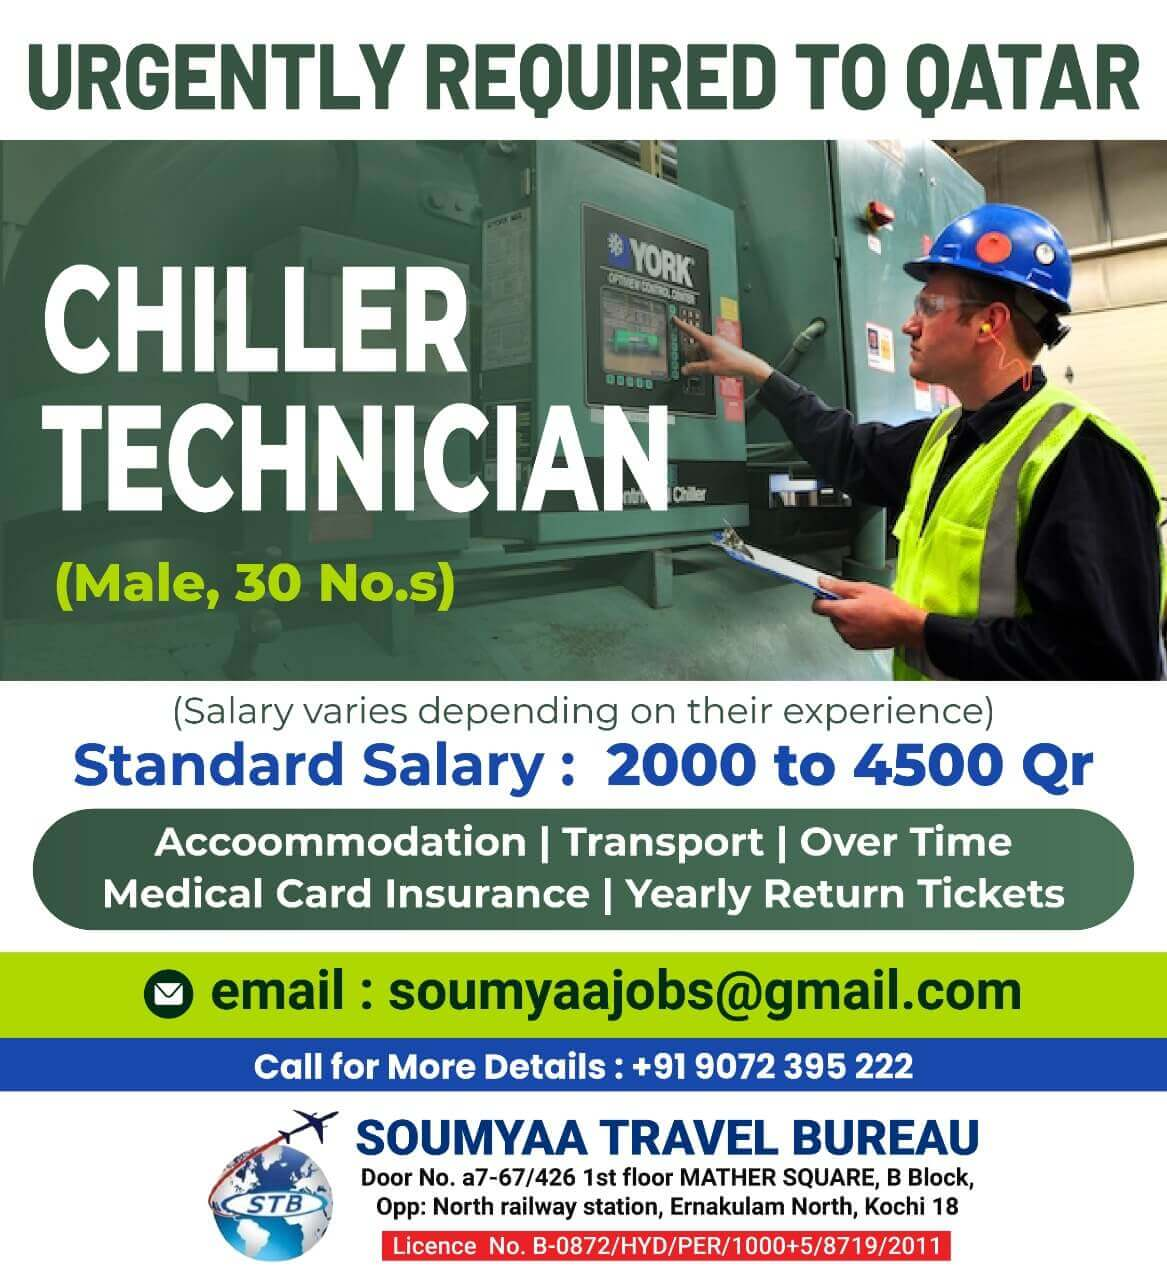 Chillers technicians for qatar